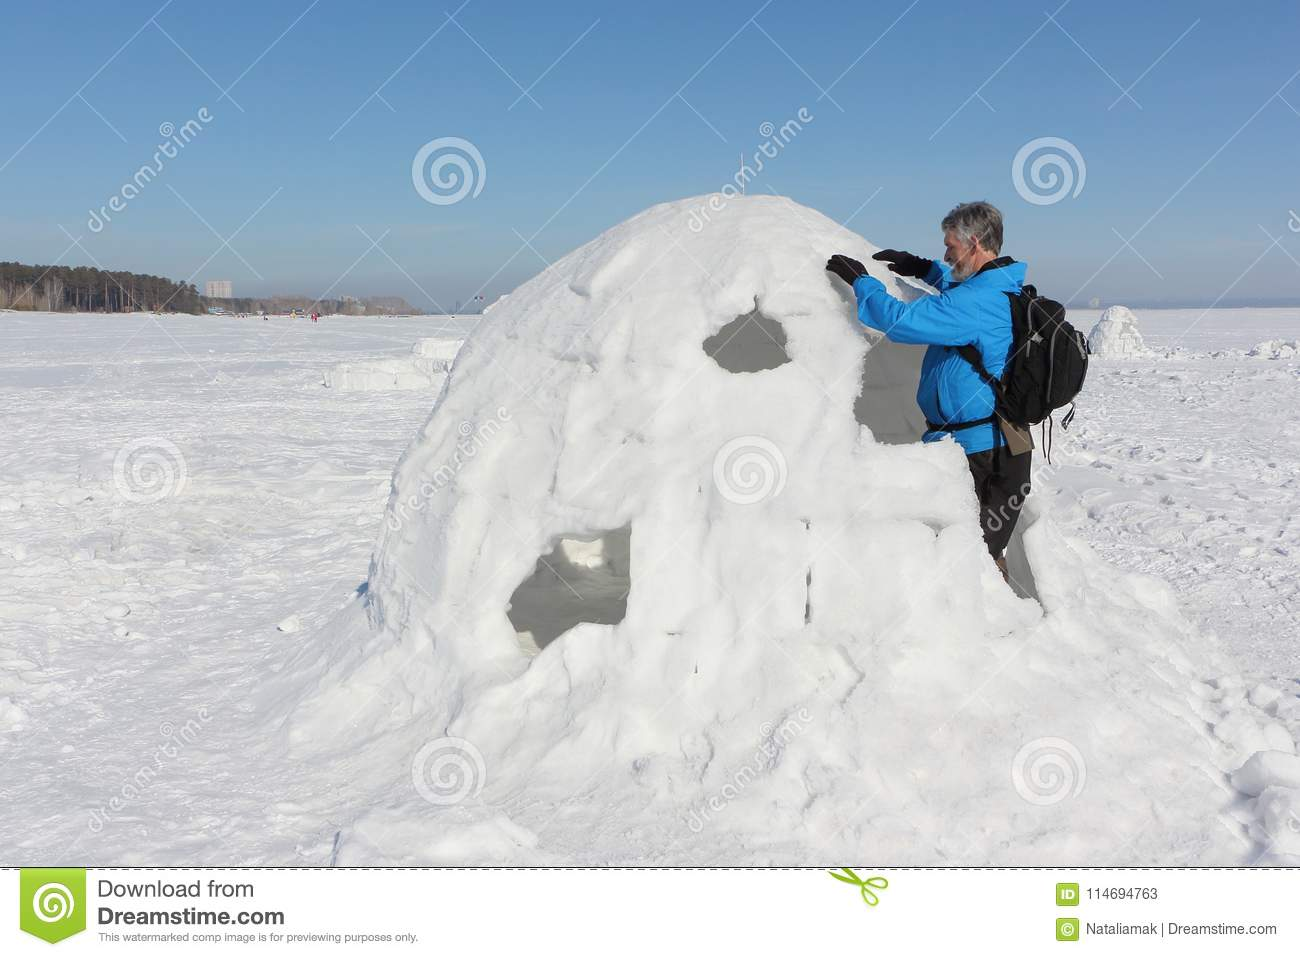 Man building an igloo in winter